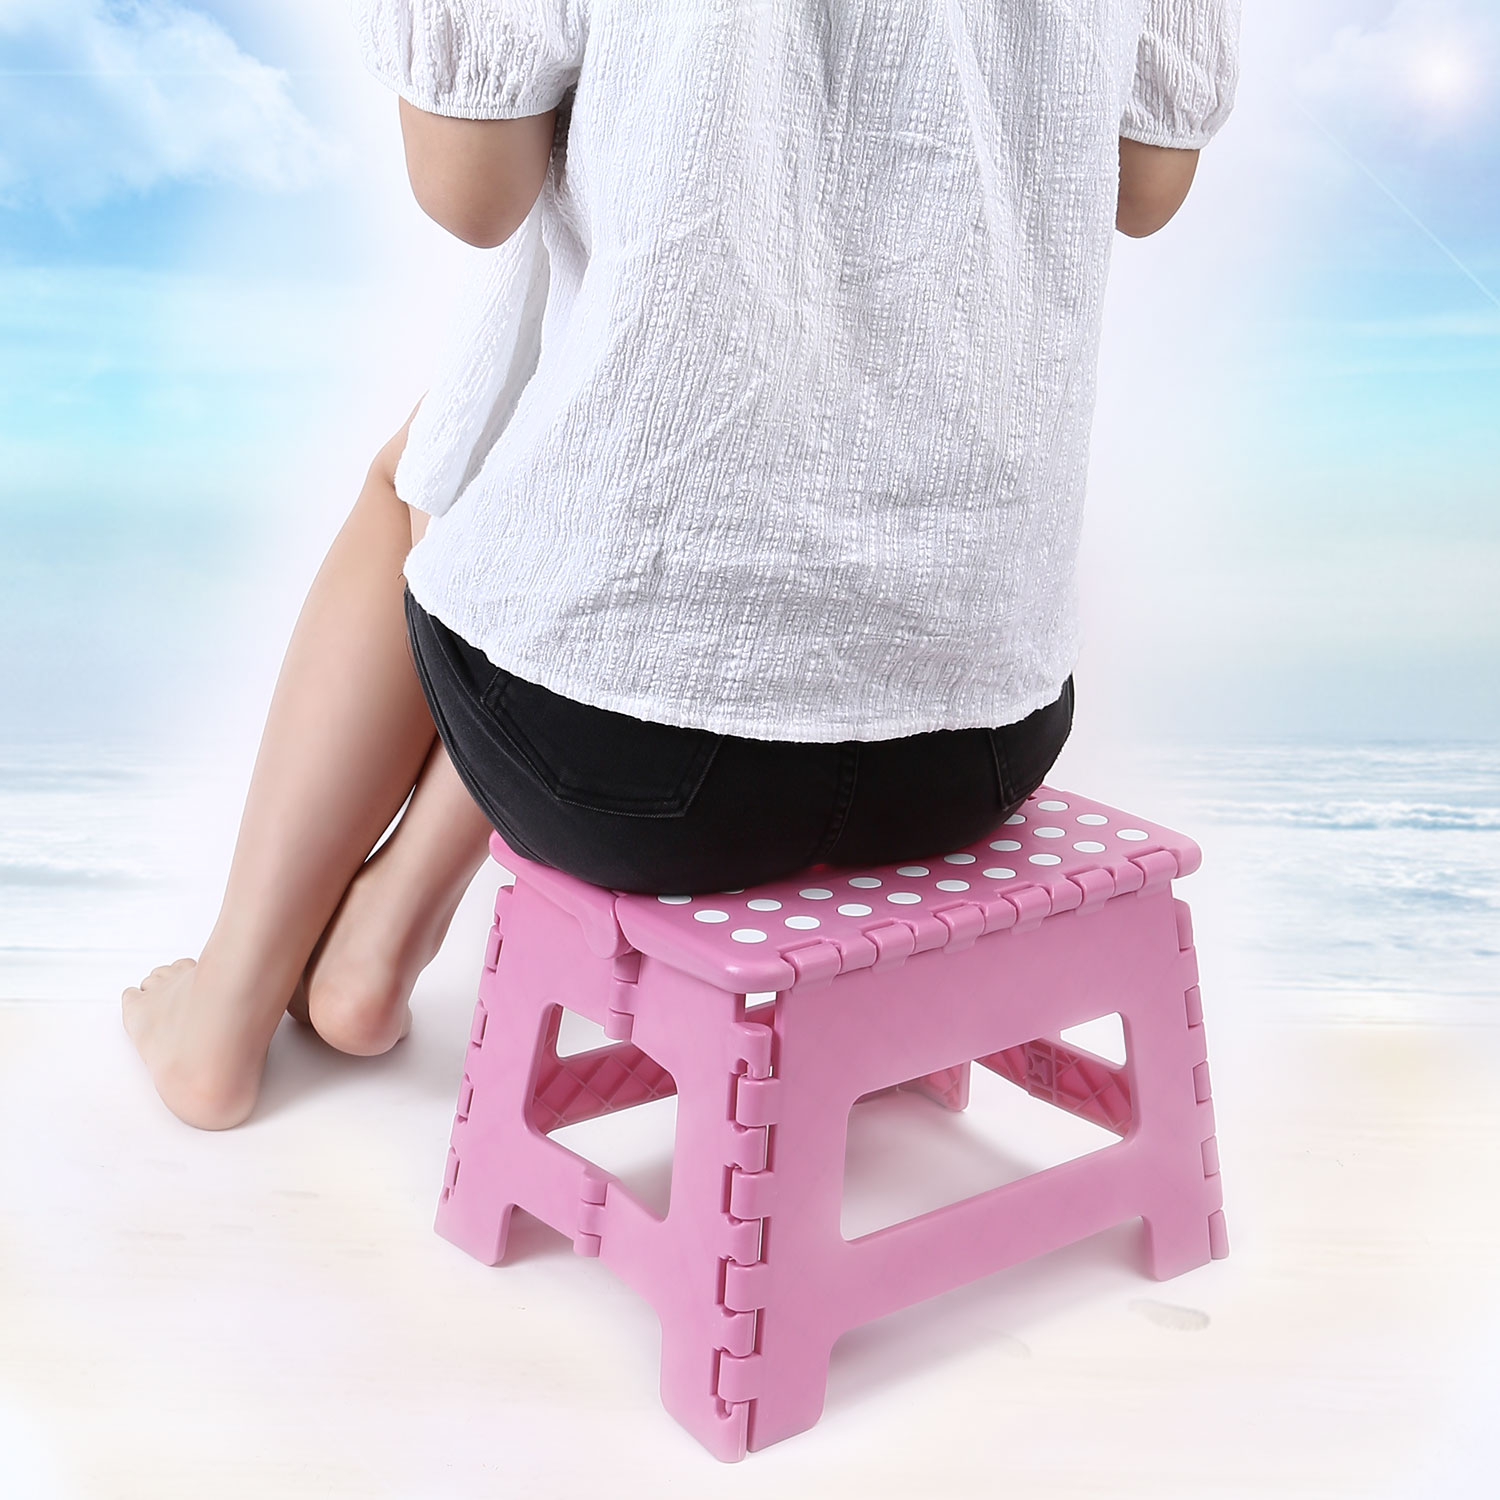 Stepping Stool for Toddlers Kids Bathroom Kitchen Foldable Step ...